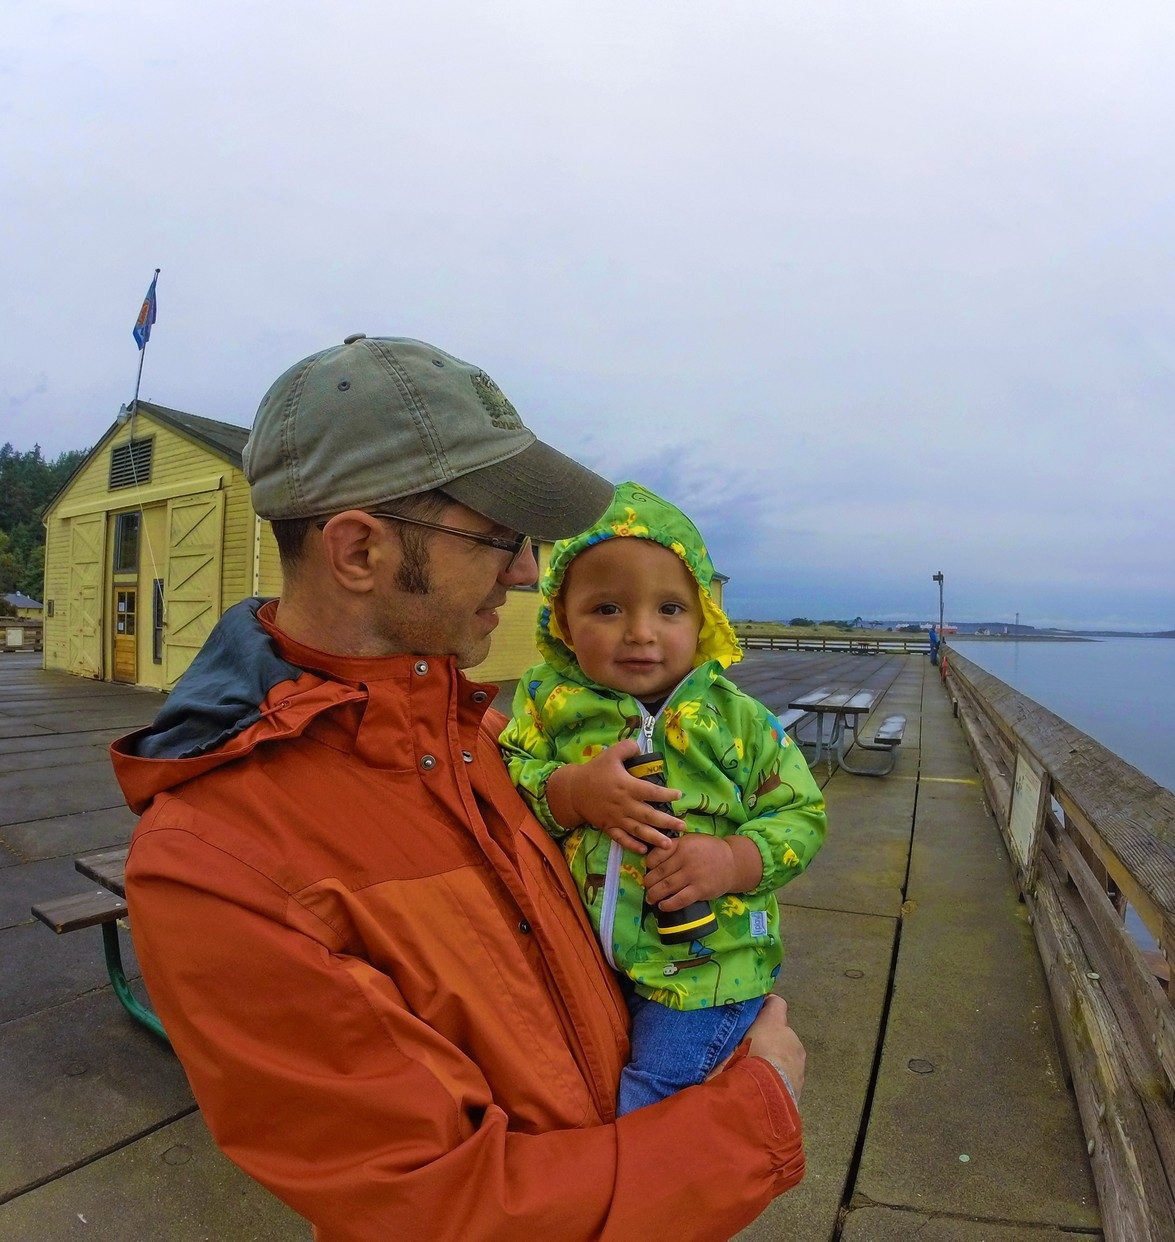 Taylor family at Port Townsend Marine Science Center 7